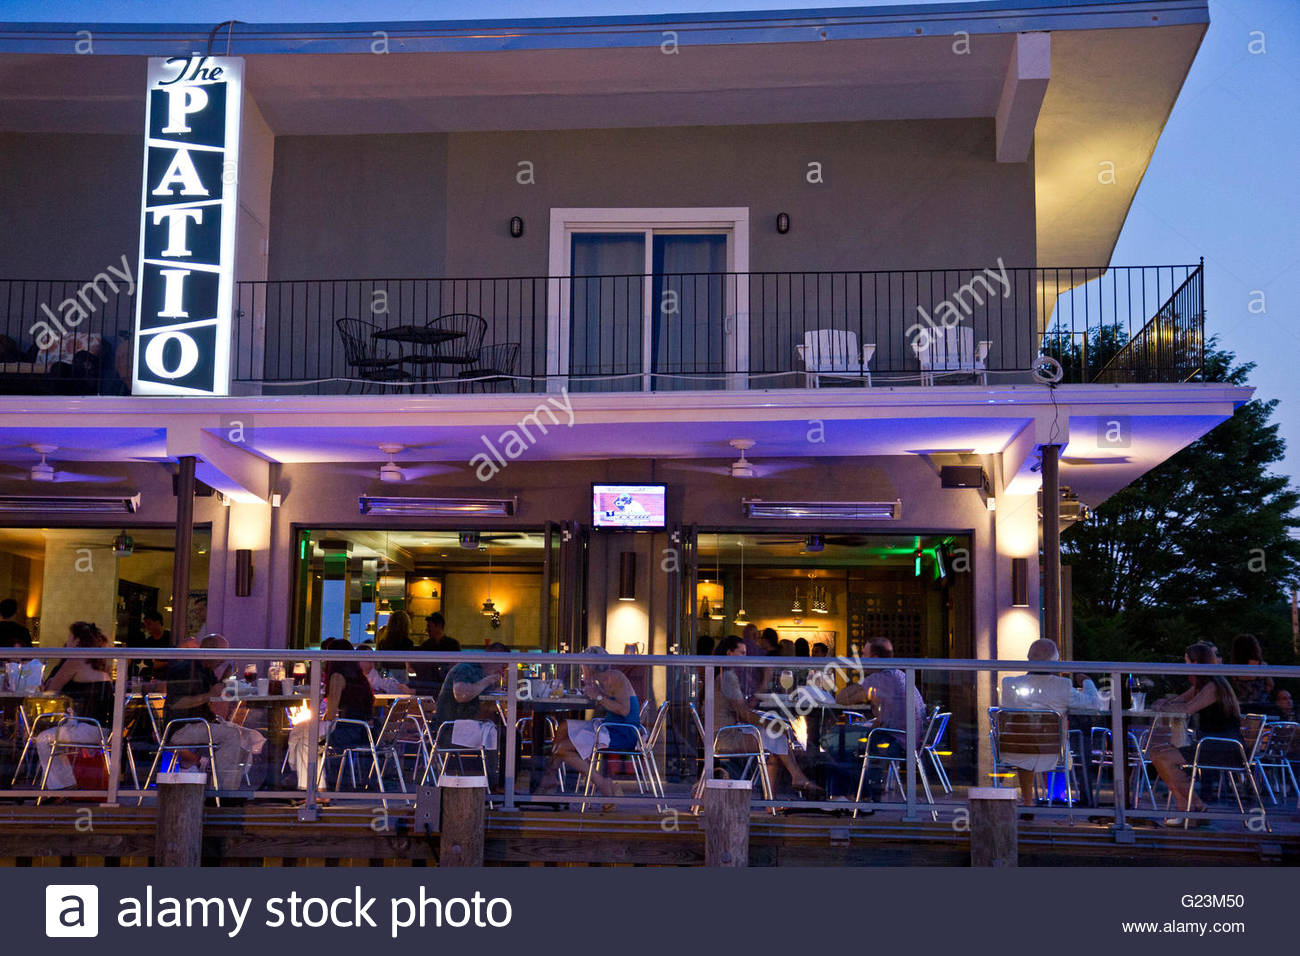 Outdoor Dining At The Patio, Freeport, Long Island, NY